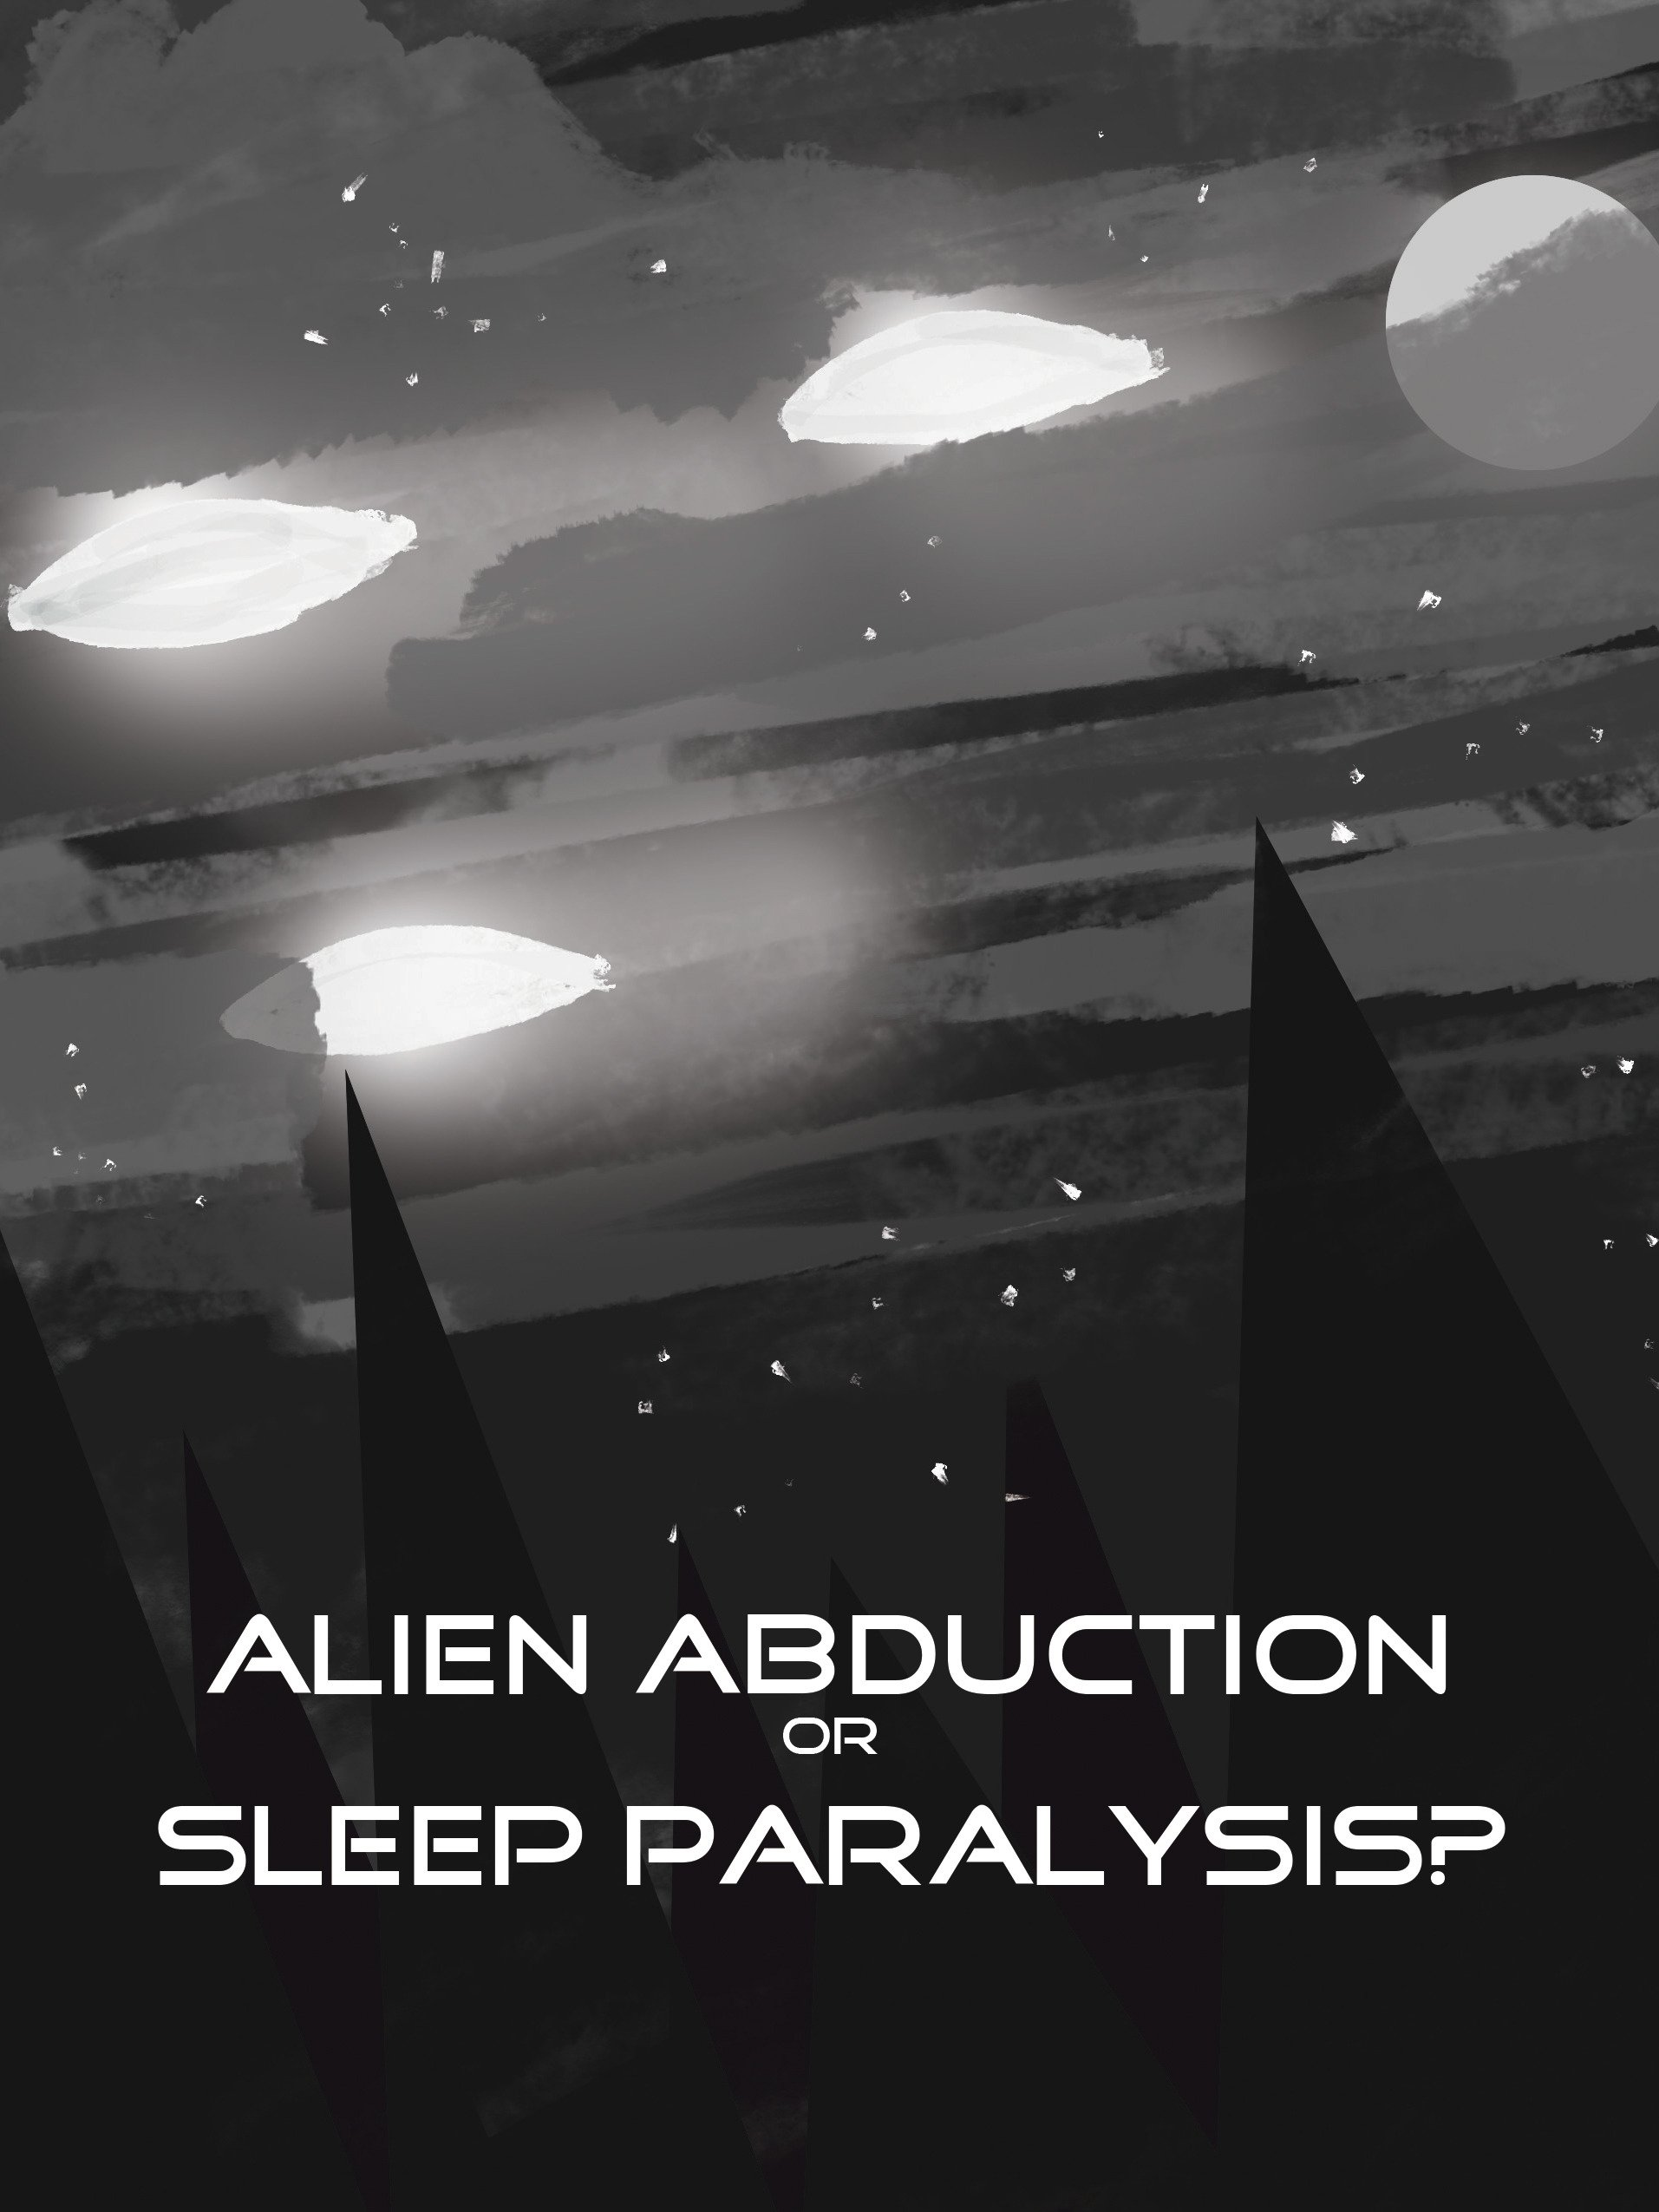 Alien Abduction or Sleep Paralysis?